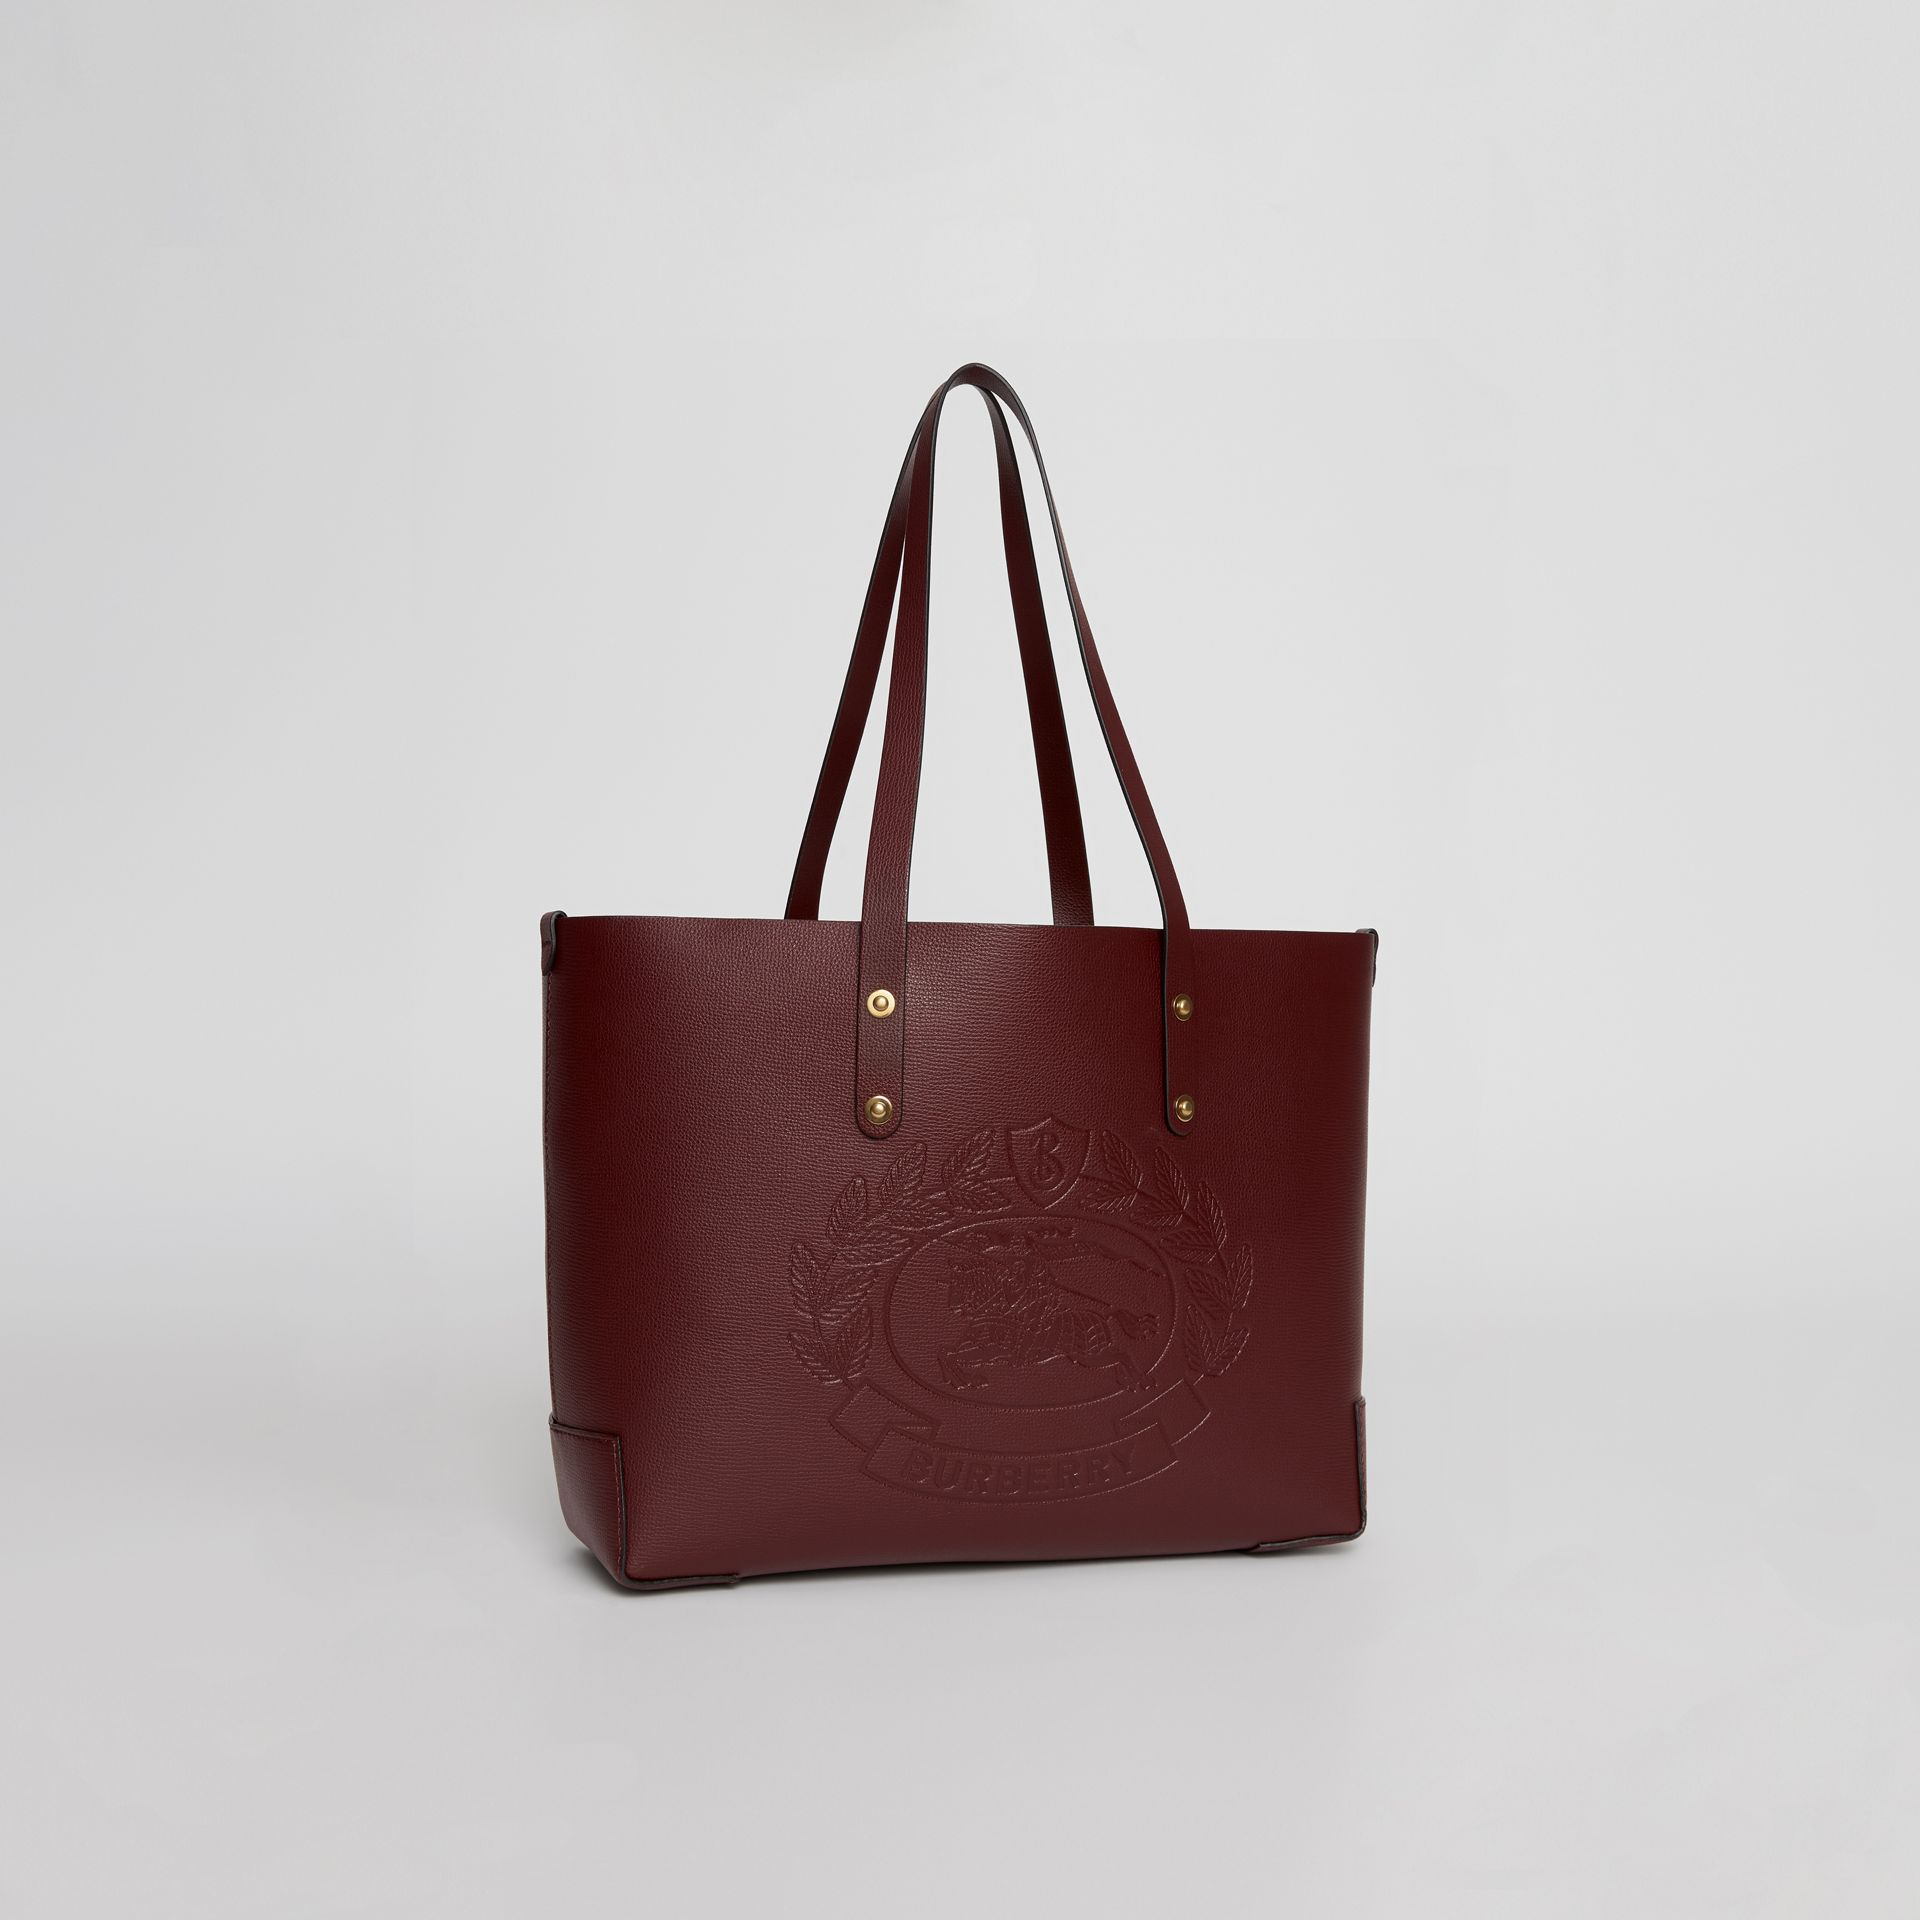 Small Embossed Crest Leather Tote in Burgundy - Women | Burberry - gallery image 7